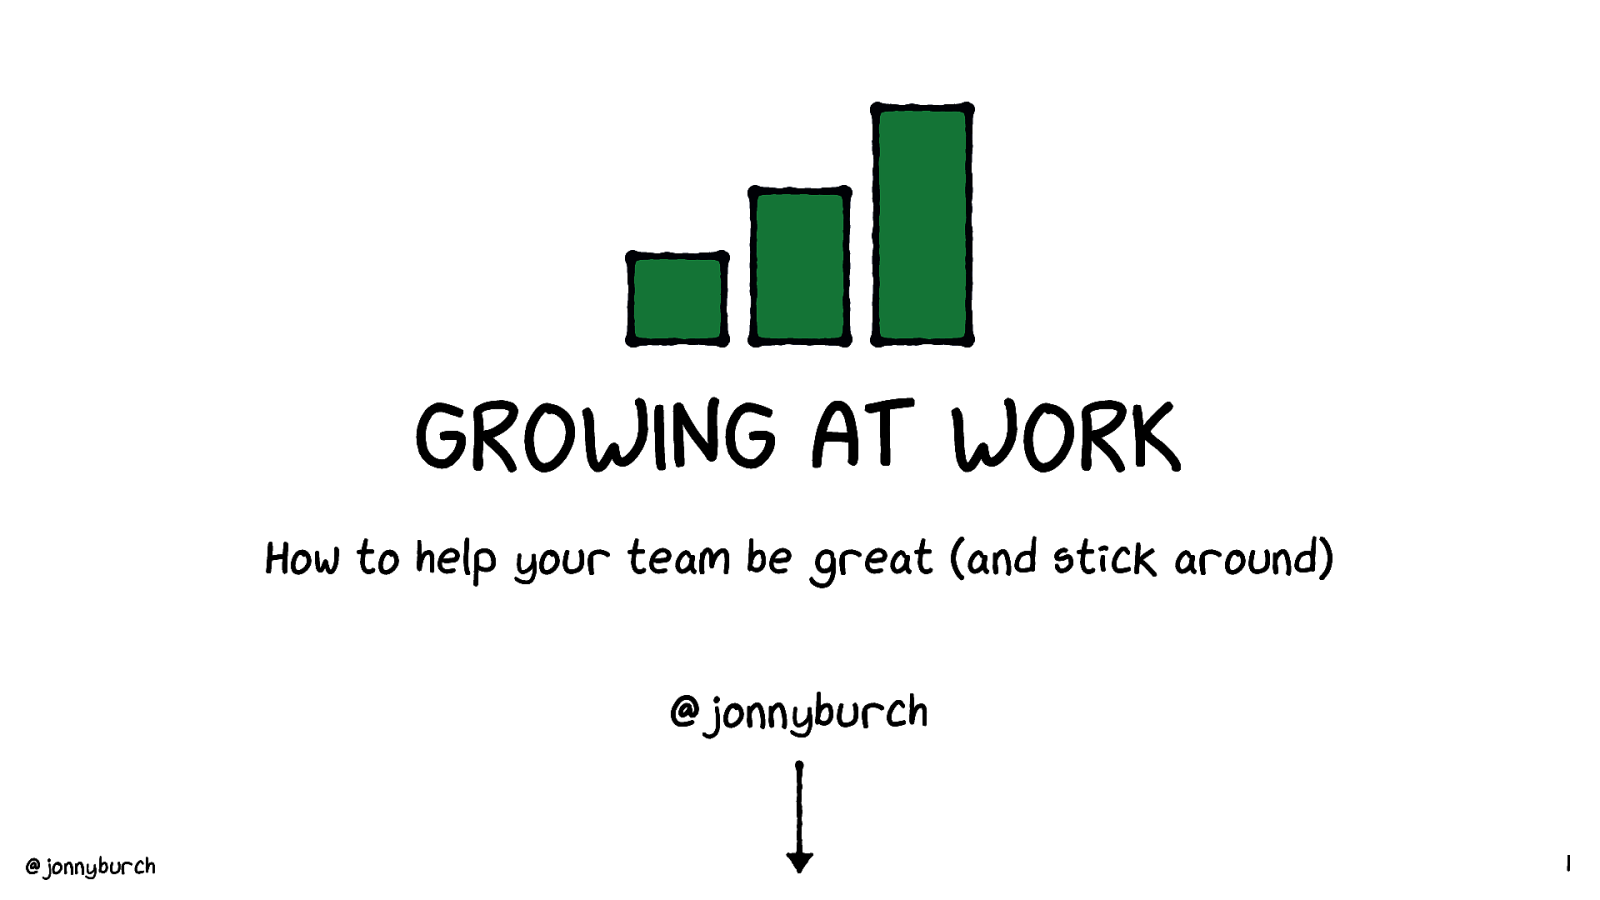 Growing at work: the importance of progression